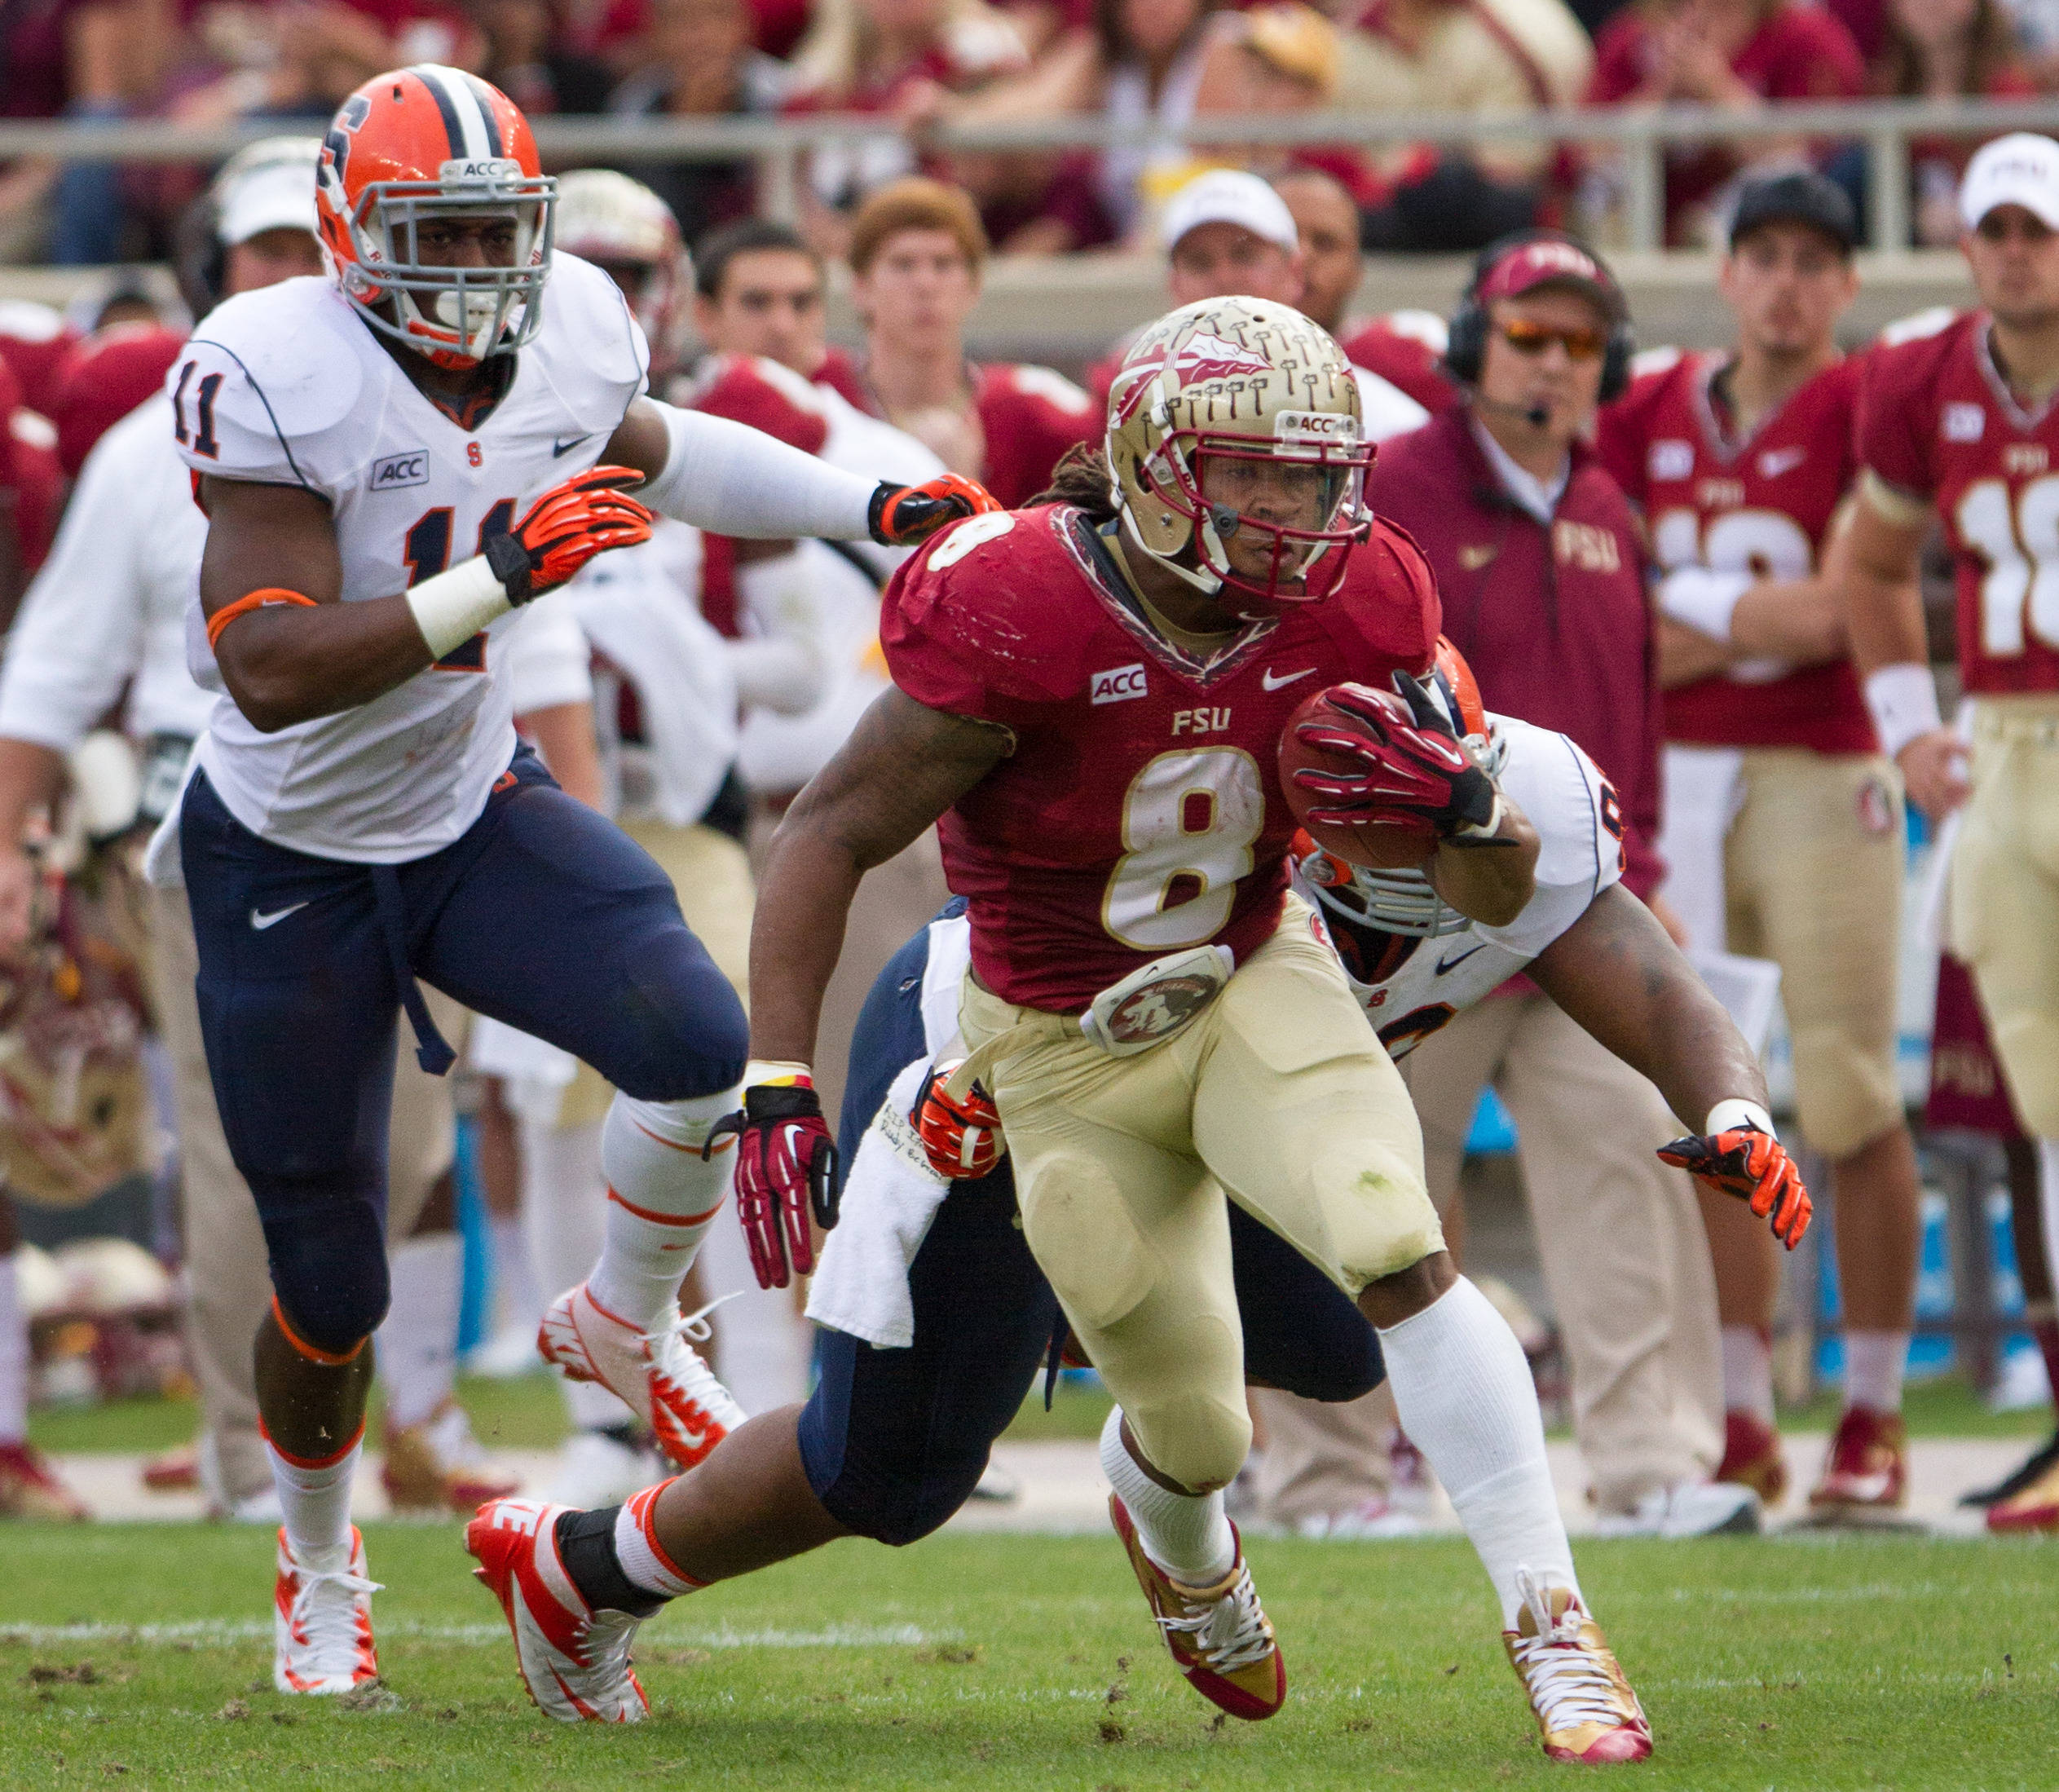 Devonta Freeman (8) carries the ball during FSU Football's 59-3 win over Syracuse on Saturday, November 16, 2013 in Tallahassee, Fla. Photo by Mike Schwarz.